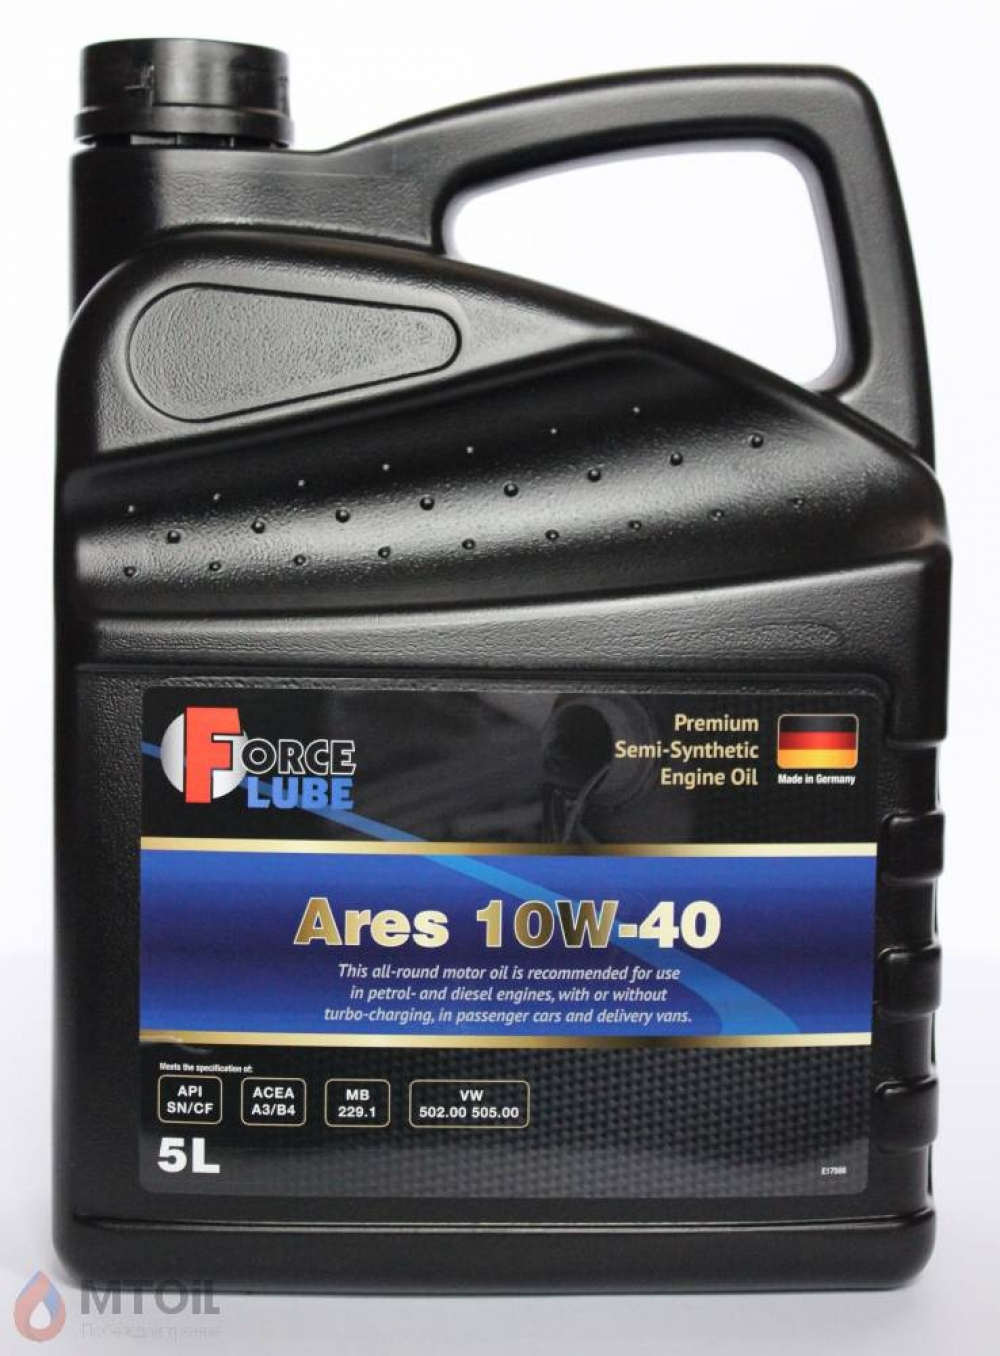 Force Premium Semi Synthetic Engine Oil Ares 10w-40 (5л) - 17926